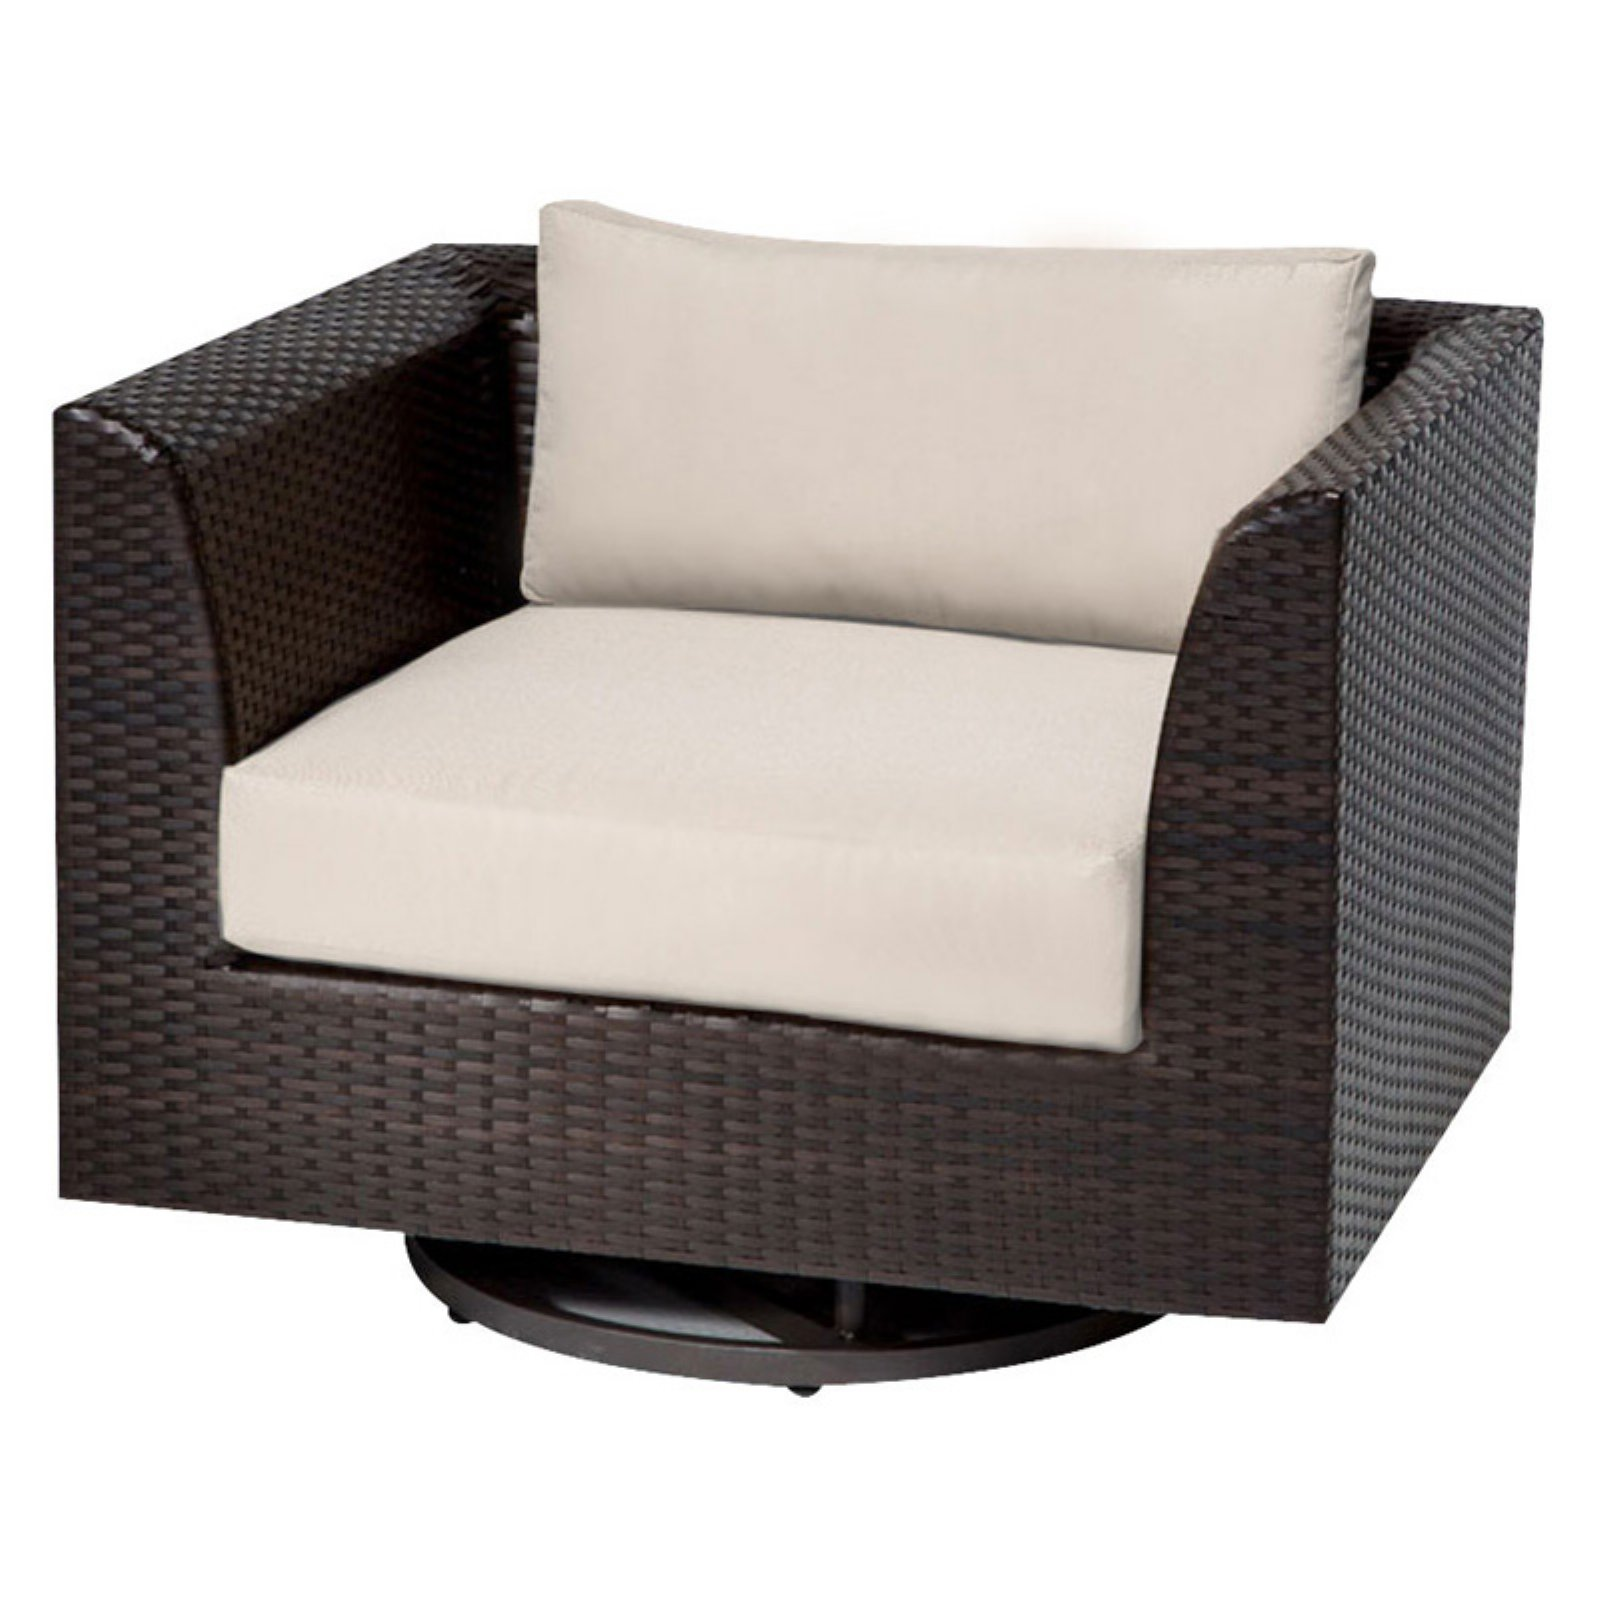 TK Classics Barbados Swivel Outdoor Dining Chair - Set of 2 Cushion Covers